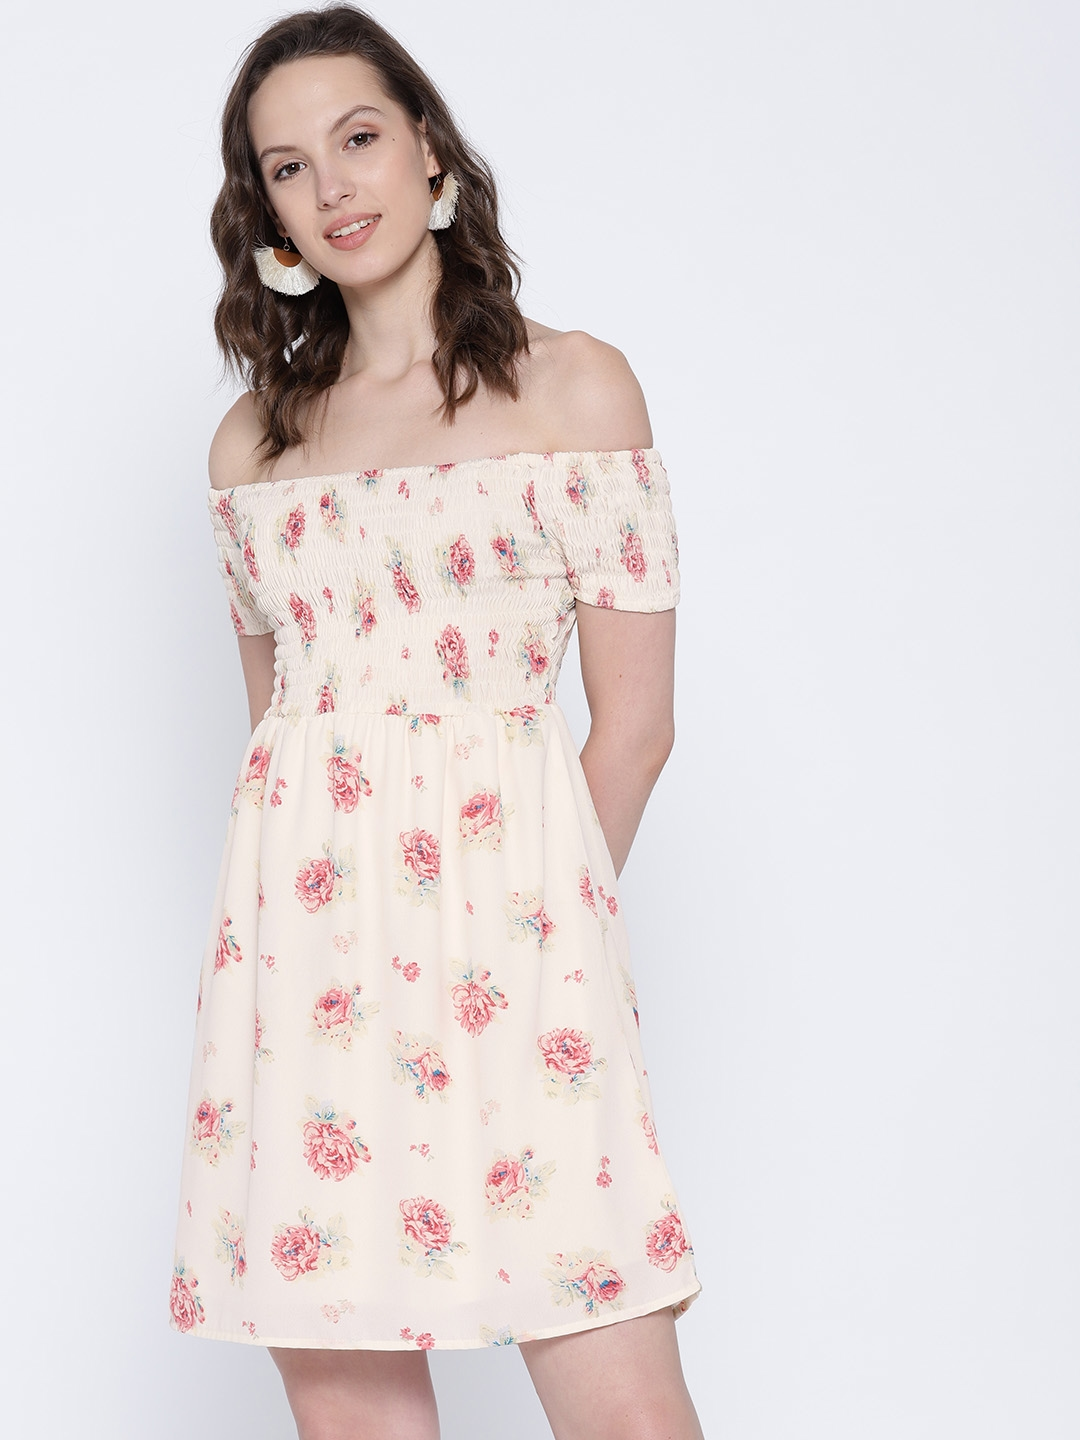 91688404bd Sera Women Off-White & Pink Floral Print Off Shoulder Fit and Flare Dress